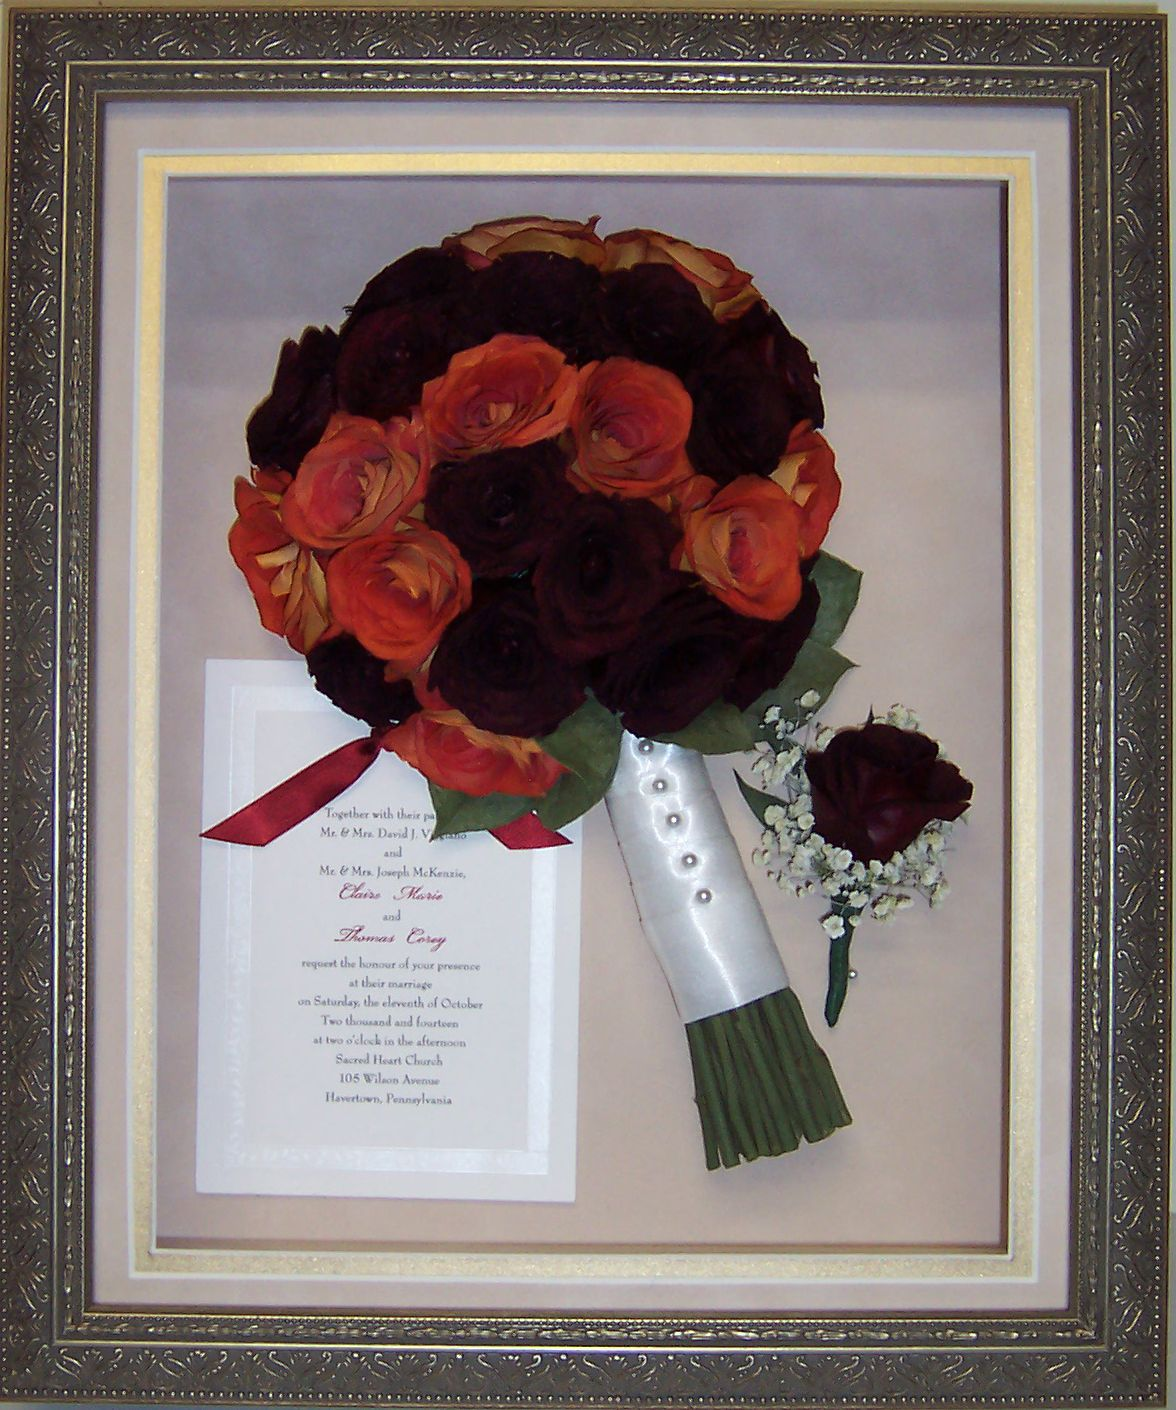 Claire Viggiano - McKenzio framed her beautiful red and orange ...